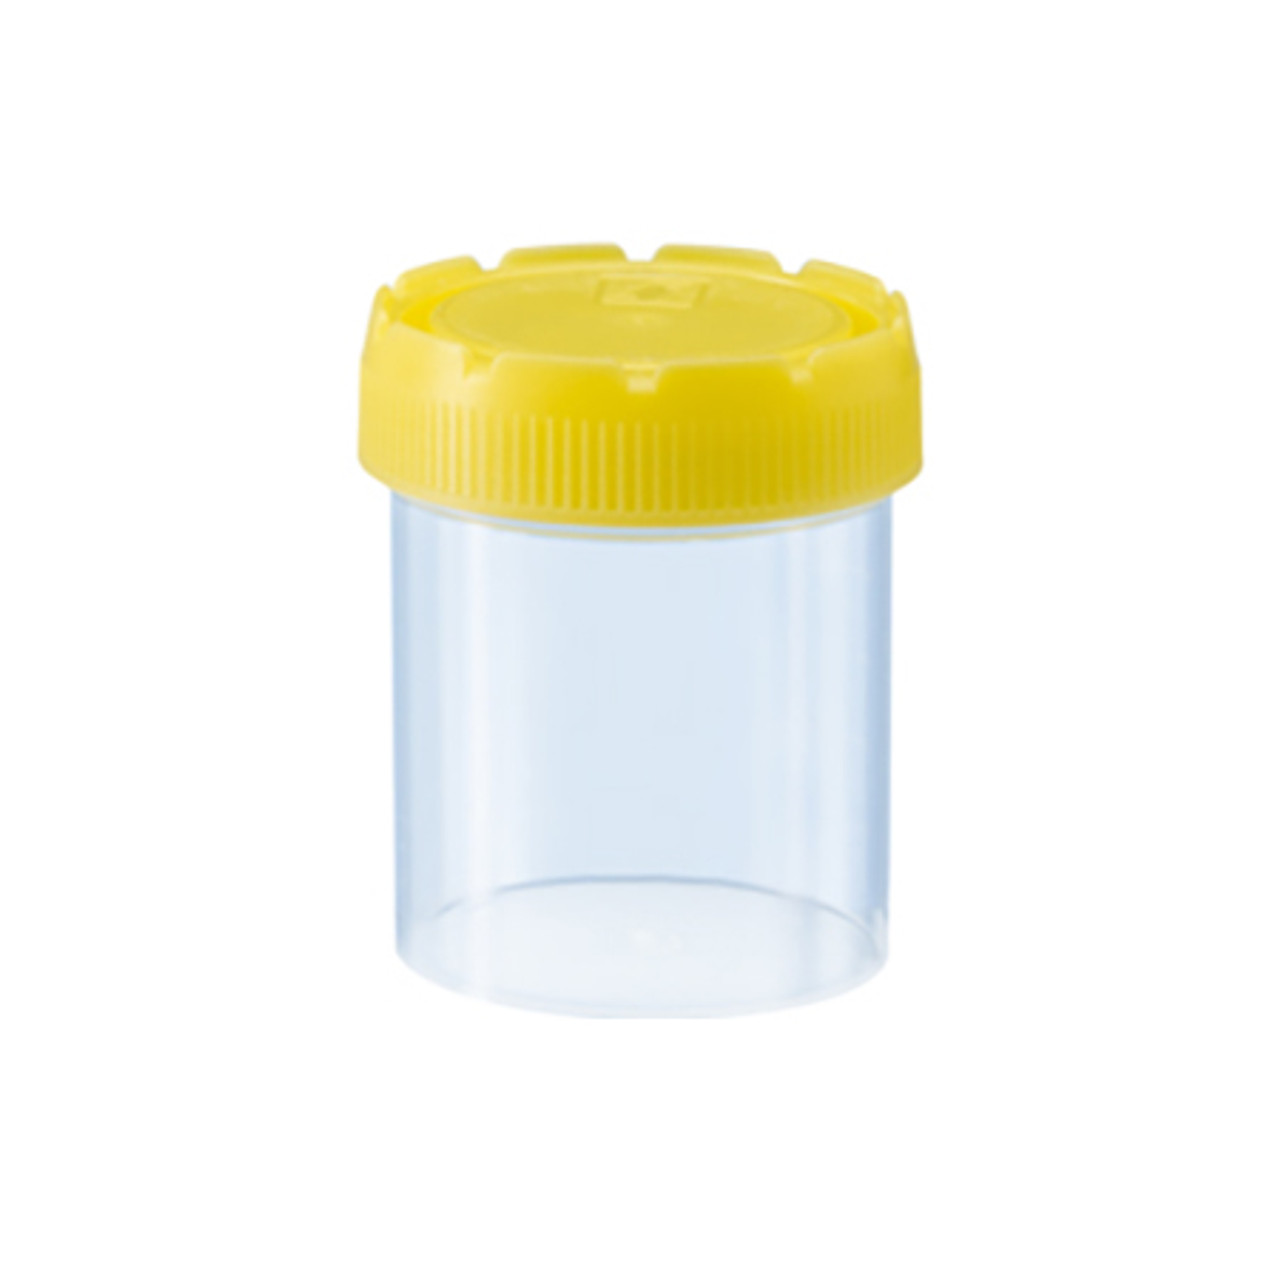 70mL plastic vial with lid, polypropylene